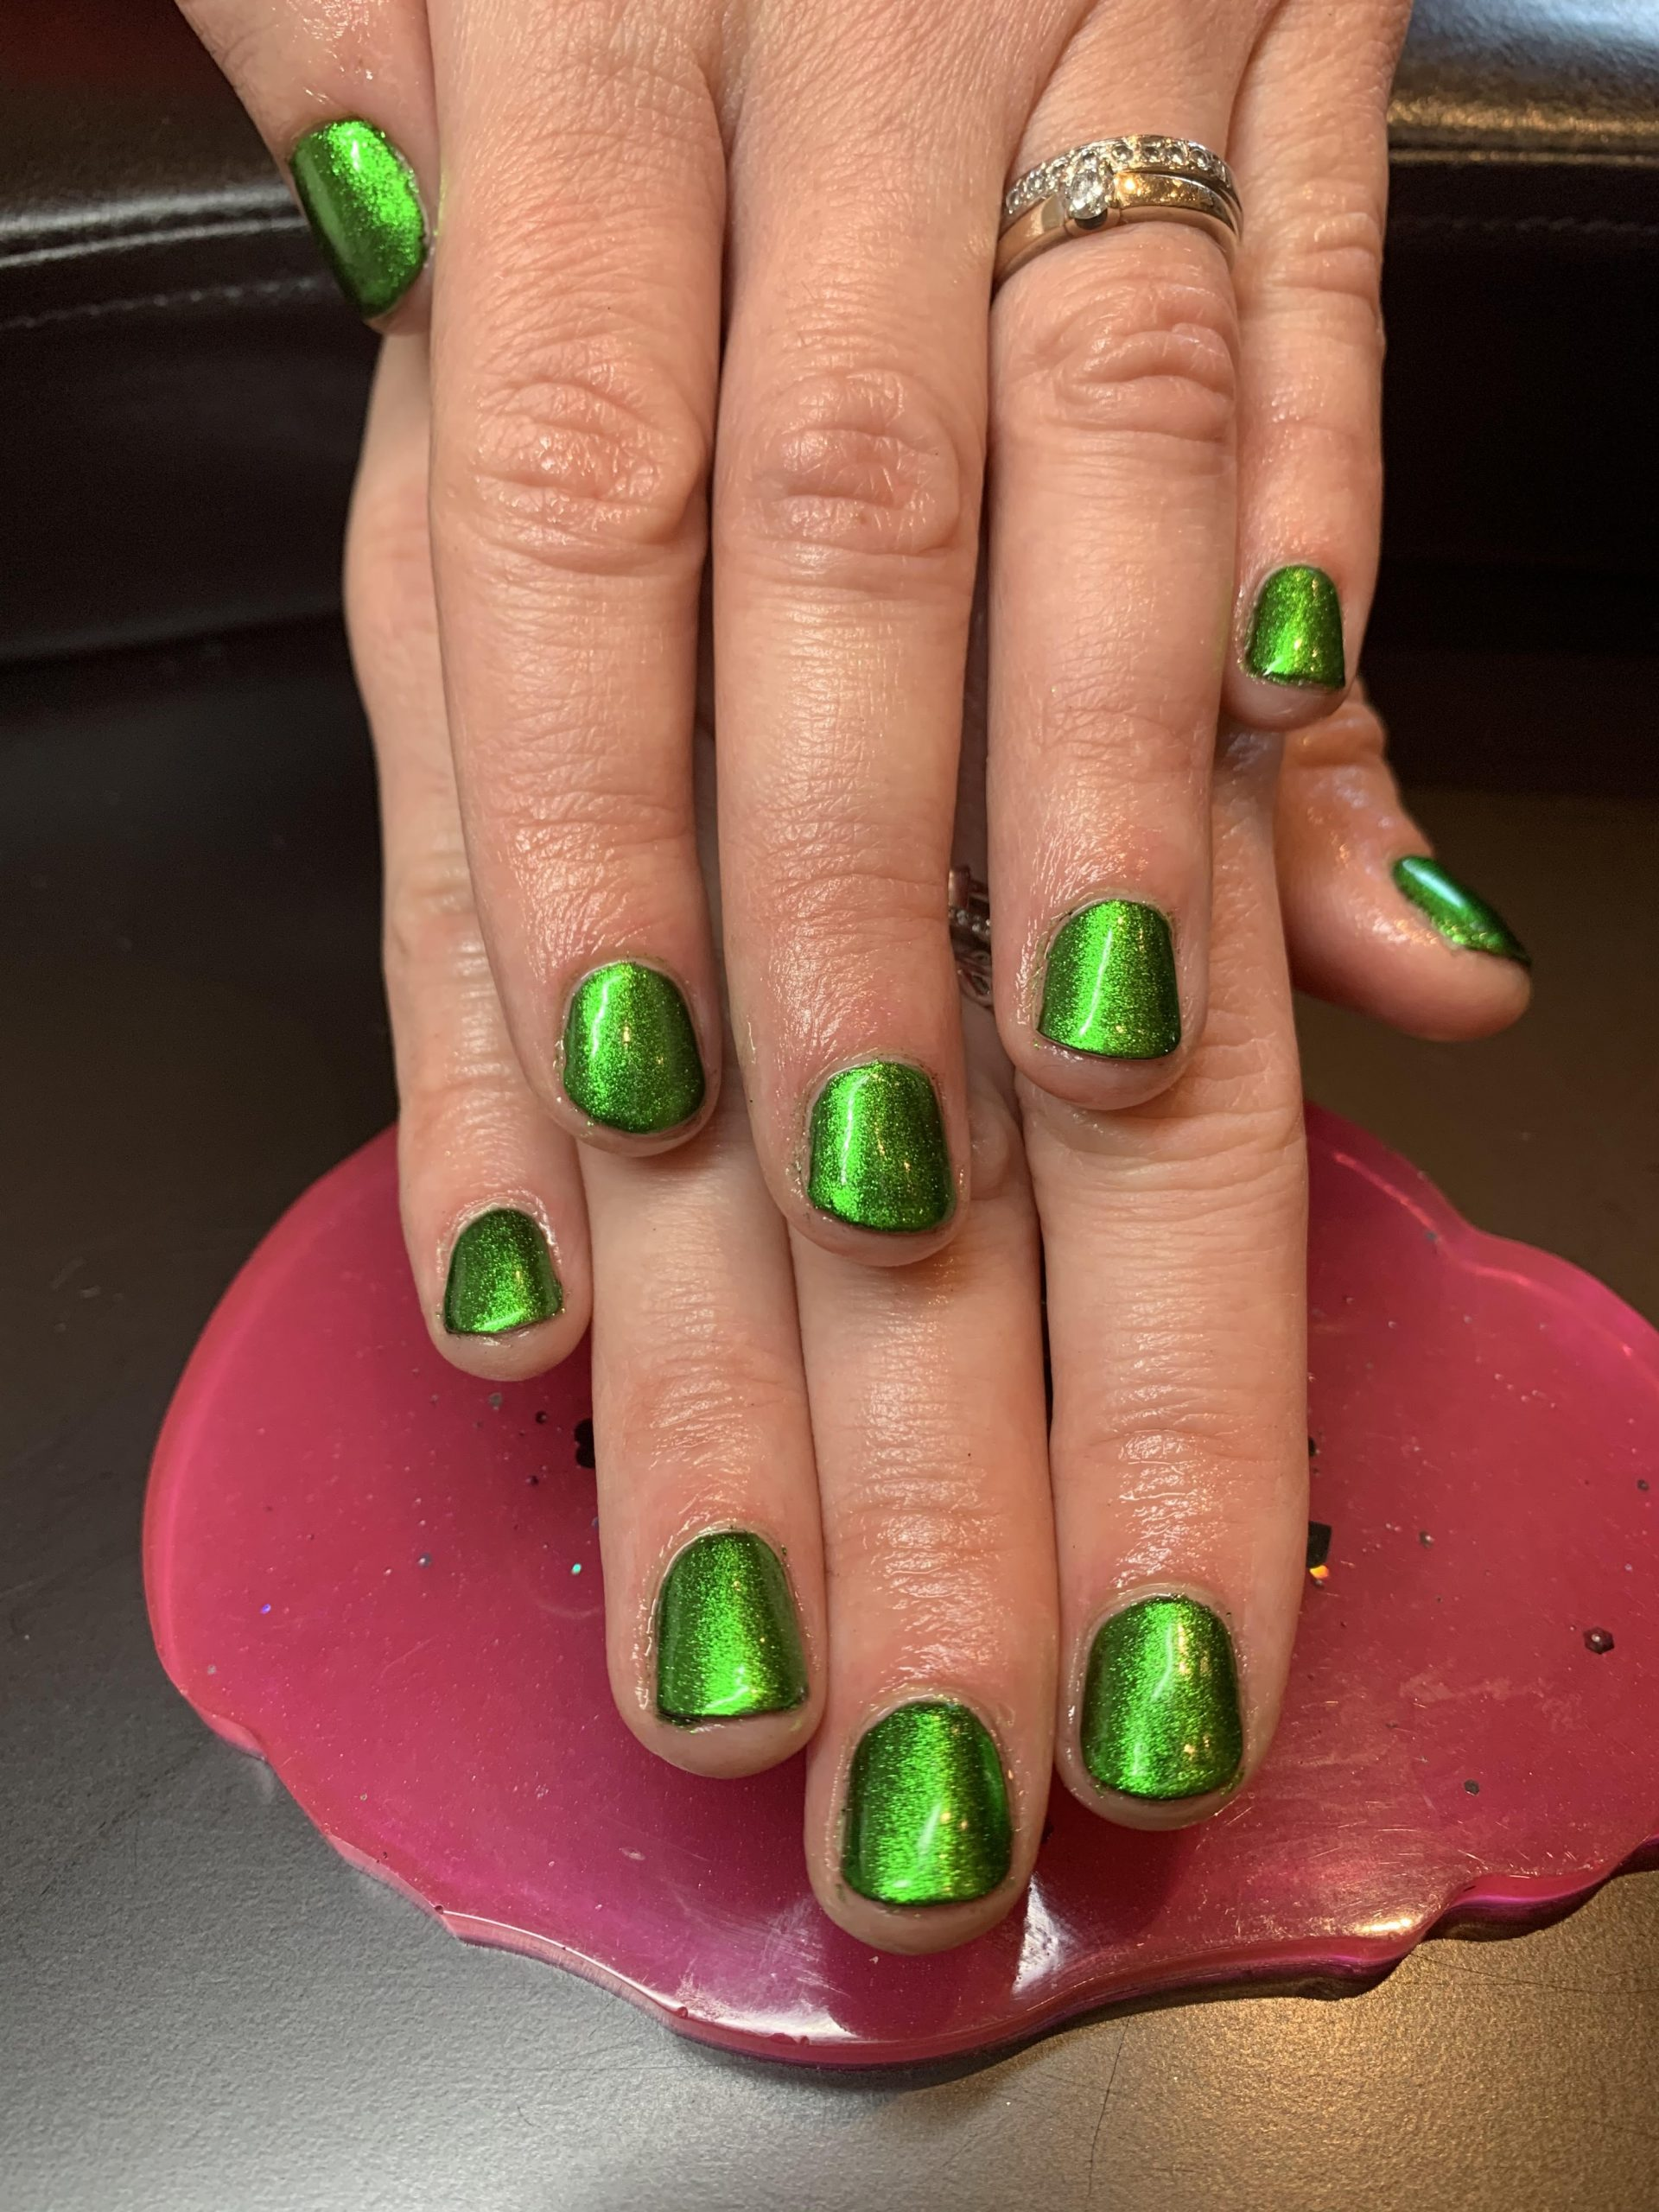 green nails, chrome nails, christmas nails, CND Shellac, nail art, nail pro, nail artist, nail technician, gel nails, shellac nails, acrylic nails, ware, mobile